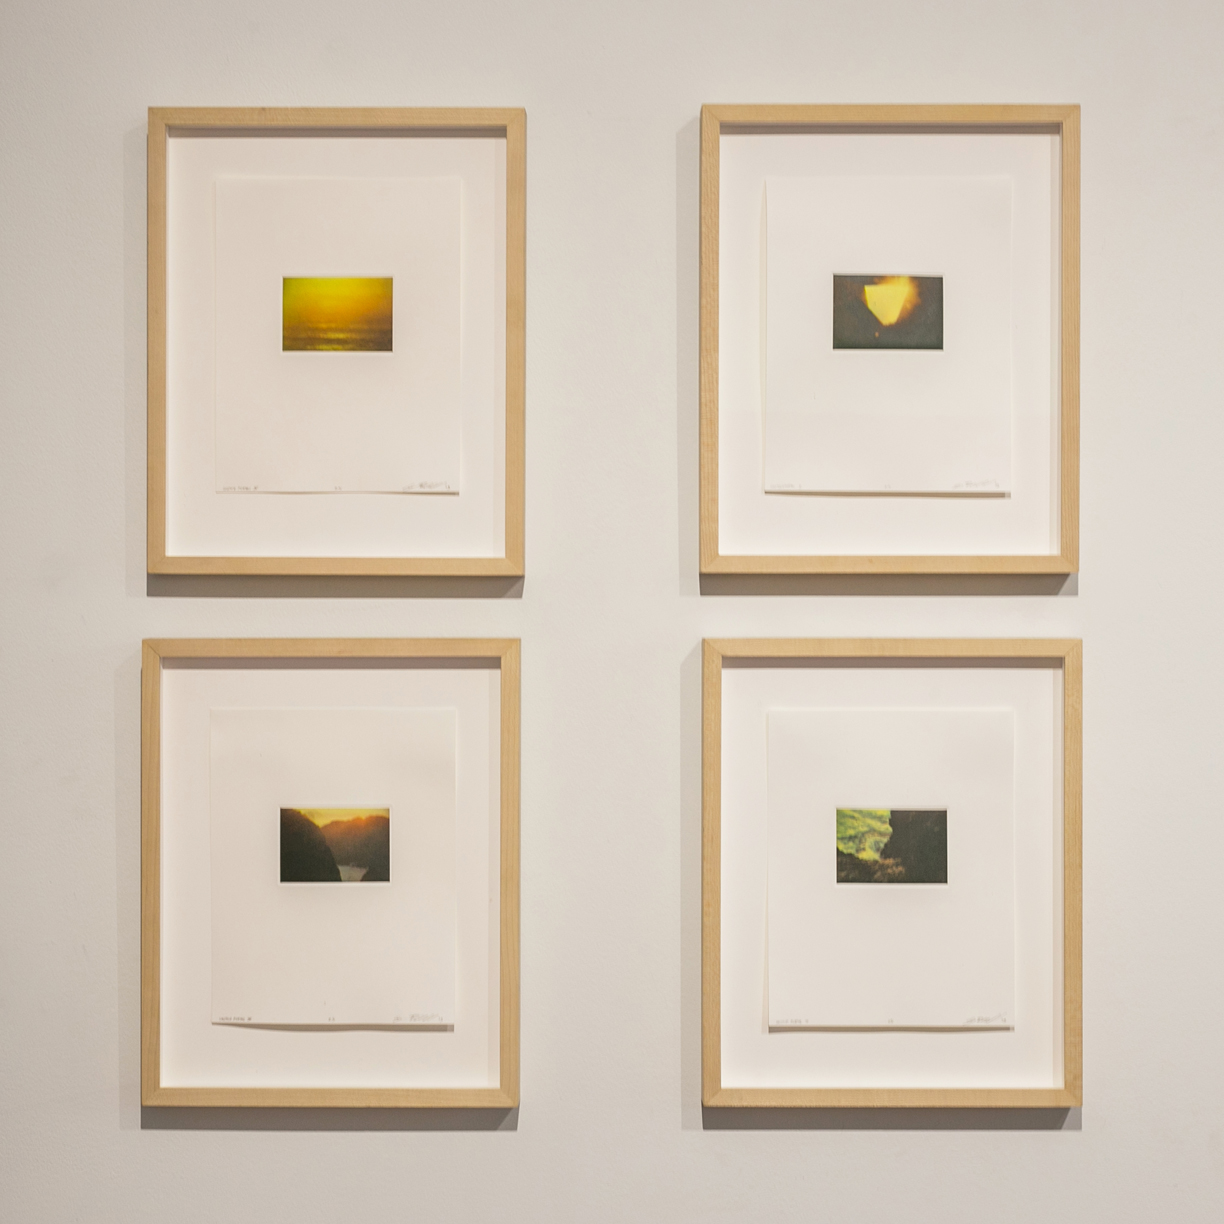 Corey Riddell From top to bottom, left to right:  Solstice Portal II ; Solstice Portal IV; Solstice Portal I; Solstice Portal III  2014 Four color dust grain gravure with chine colle 3.25 x 2.25 inch plate on 7 x 9 inch sheet each